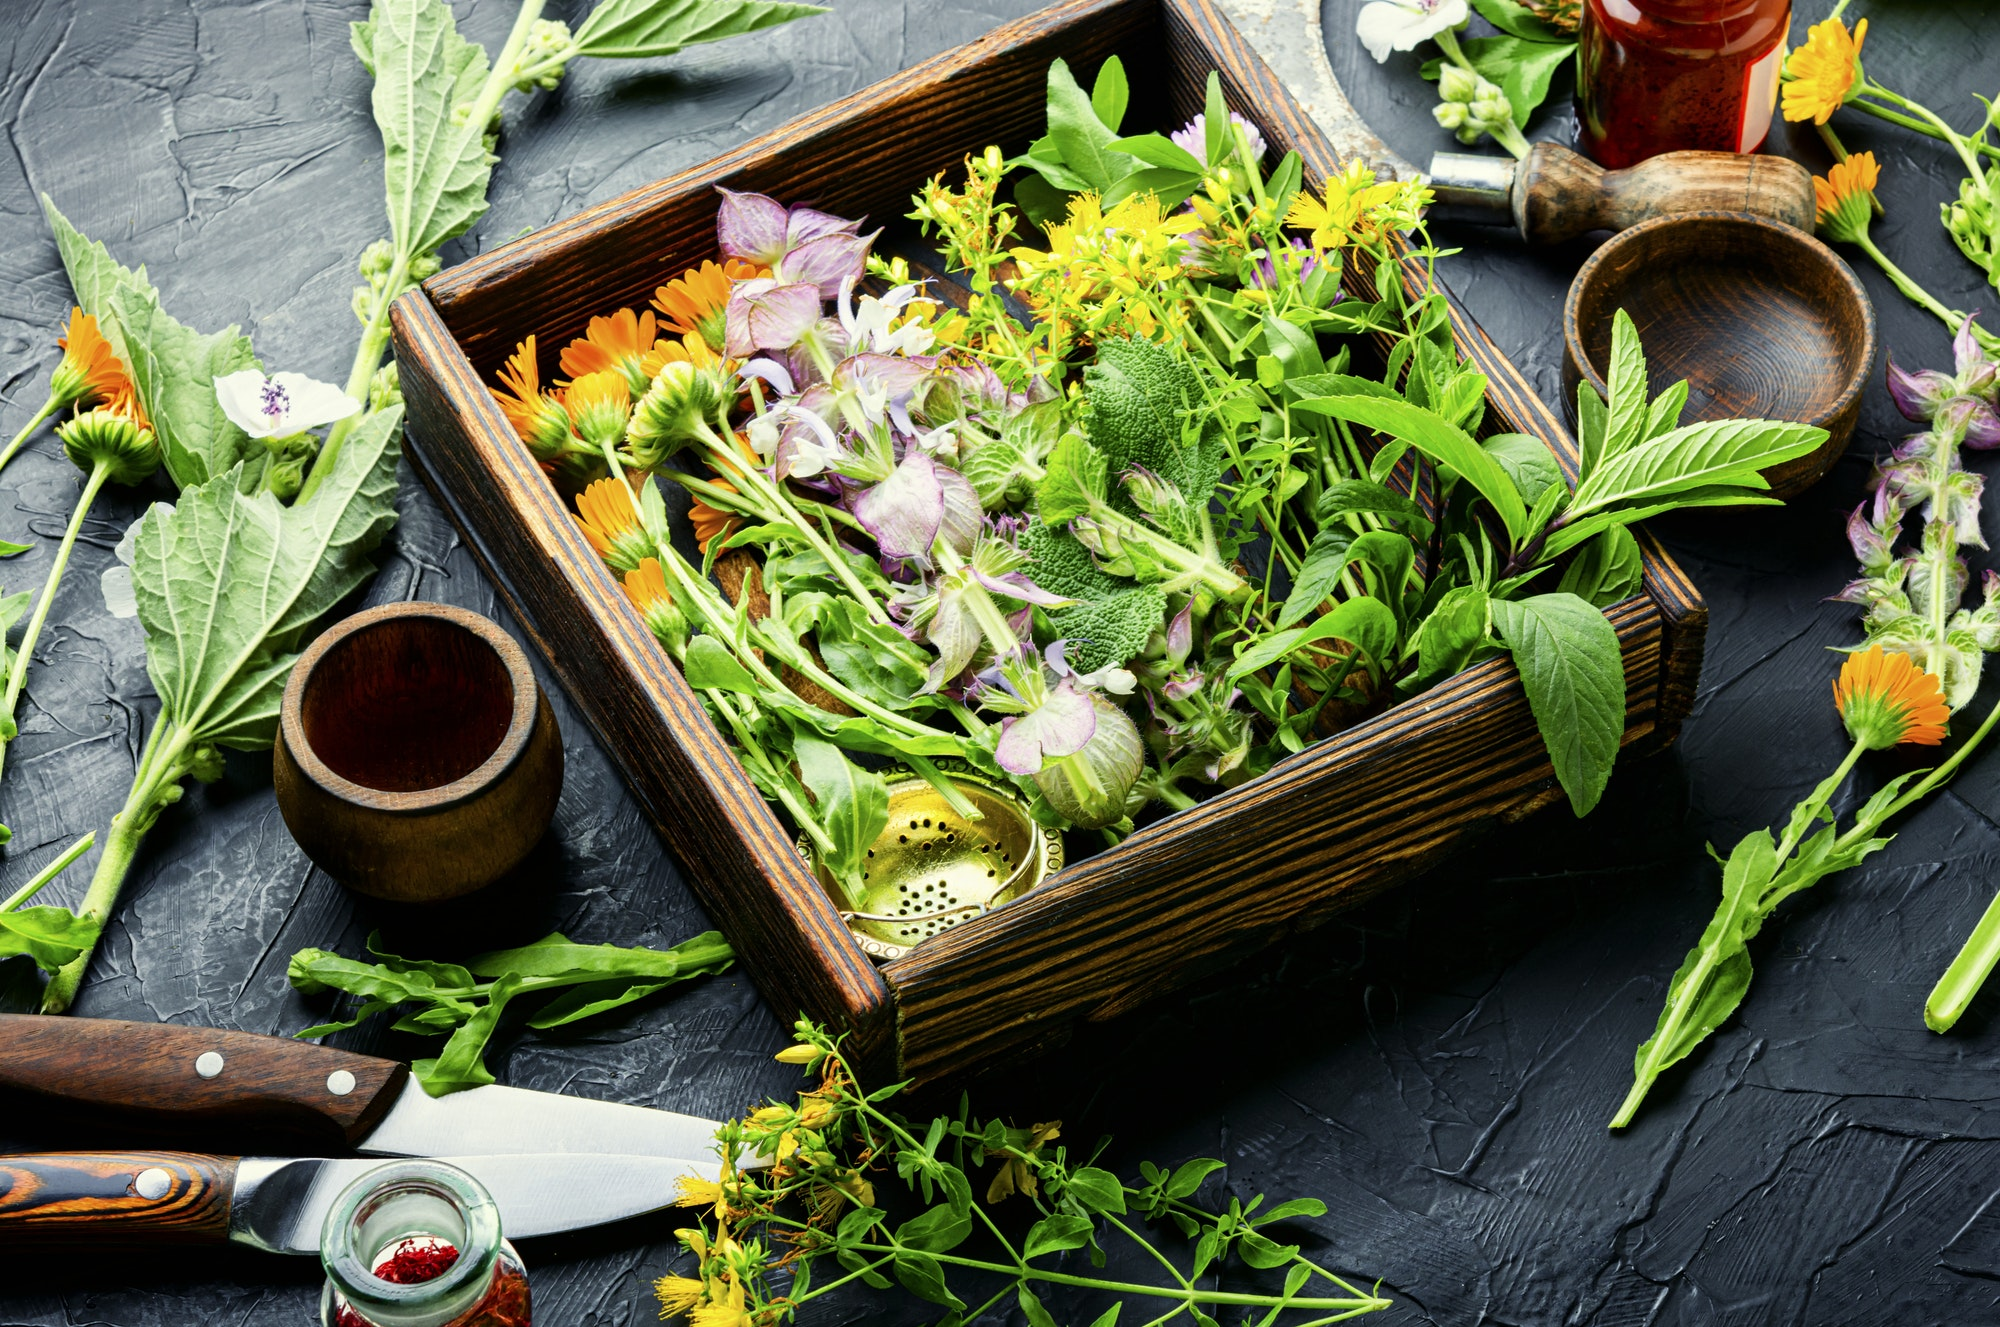 Medicinal herb and flower